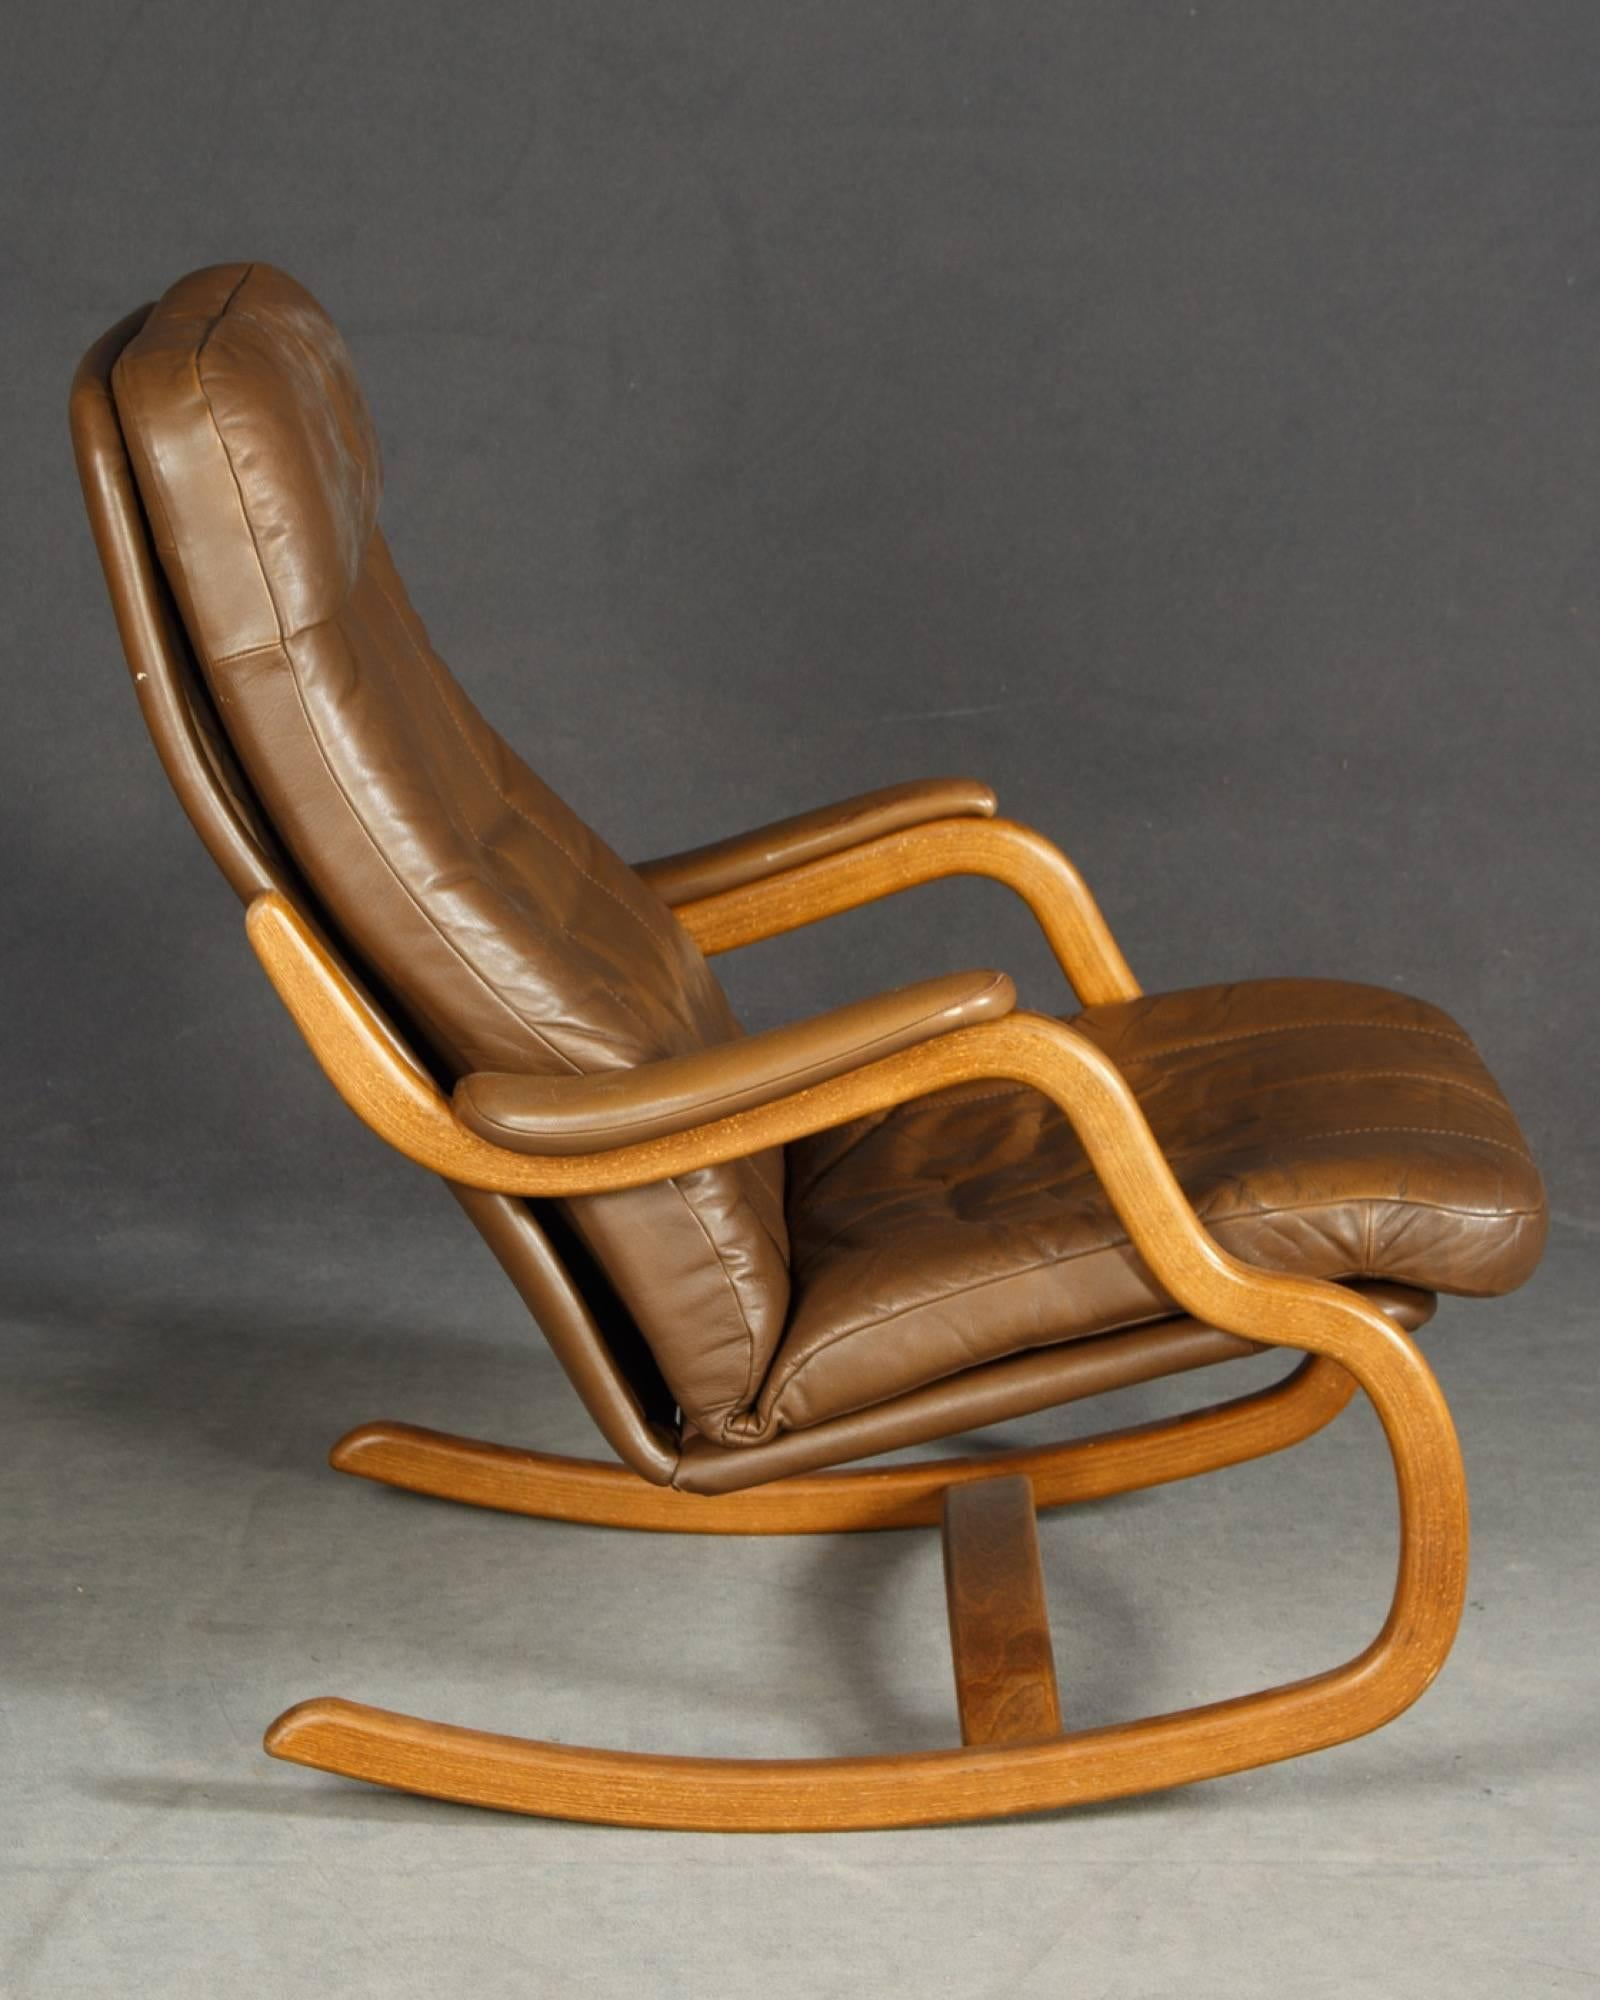 Midcentury Danish Lounge Chair With Ottoman And Leather Cushions. Nicely  Executed Design.